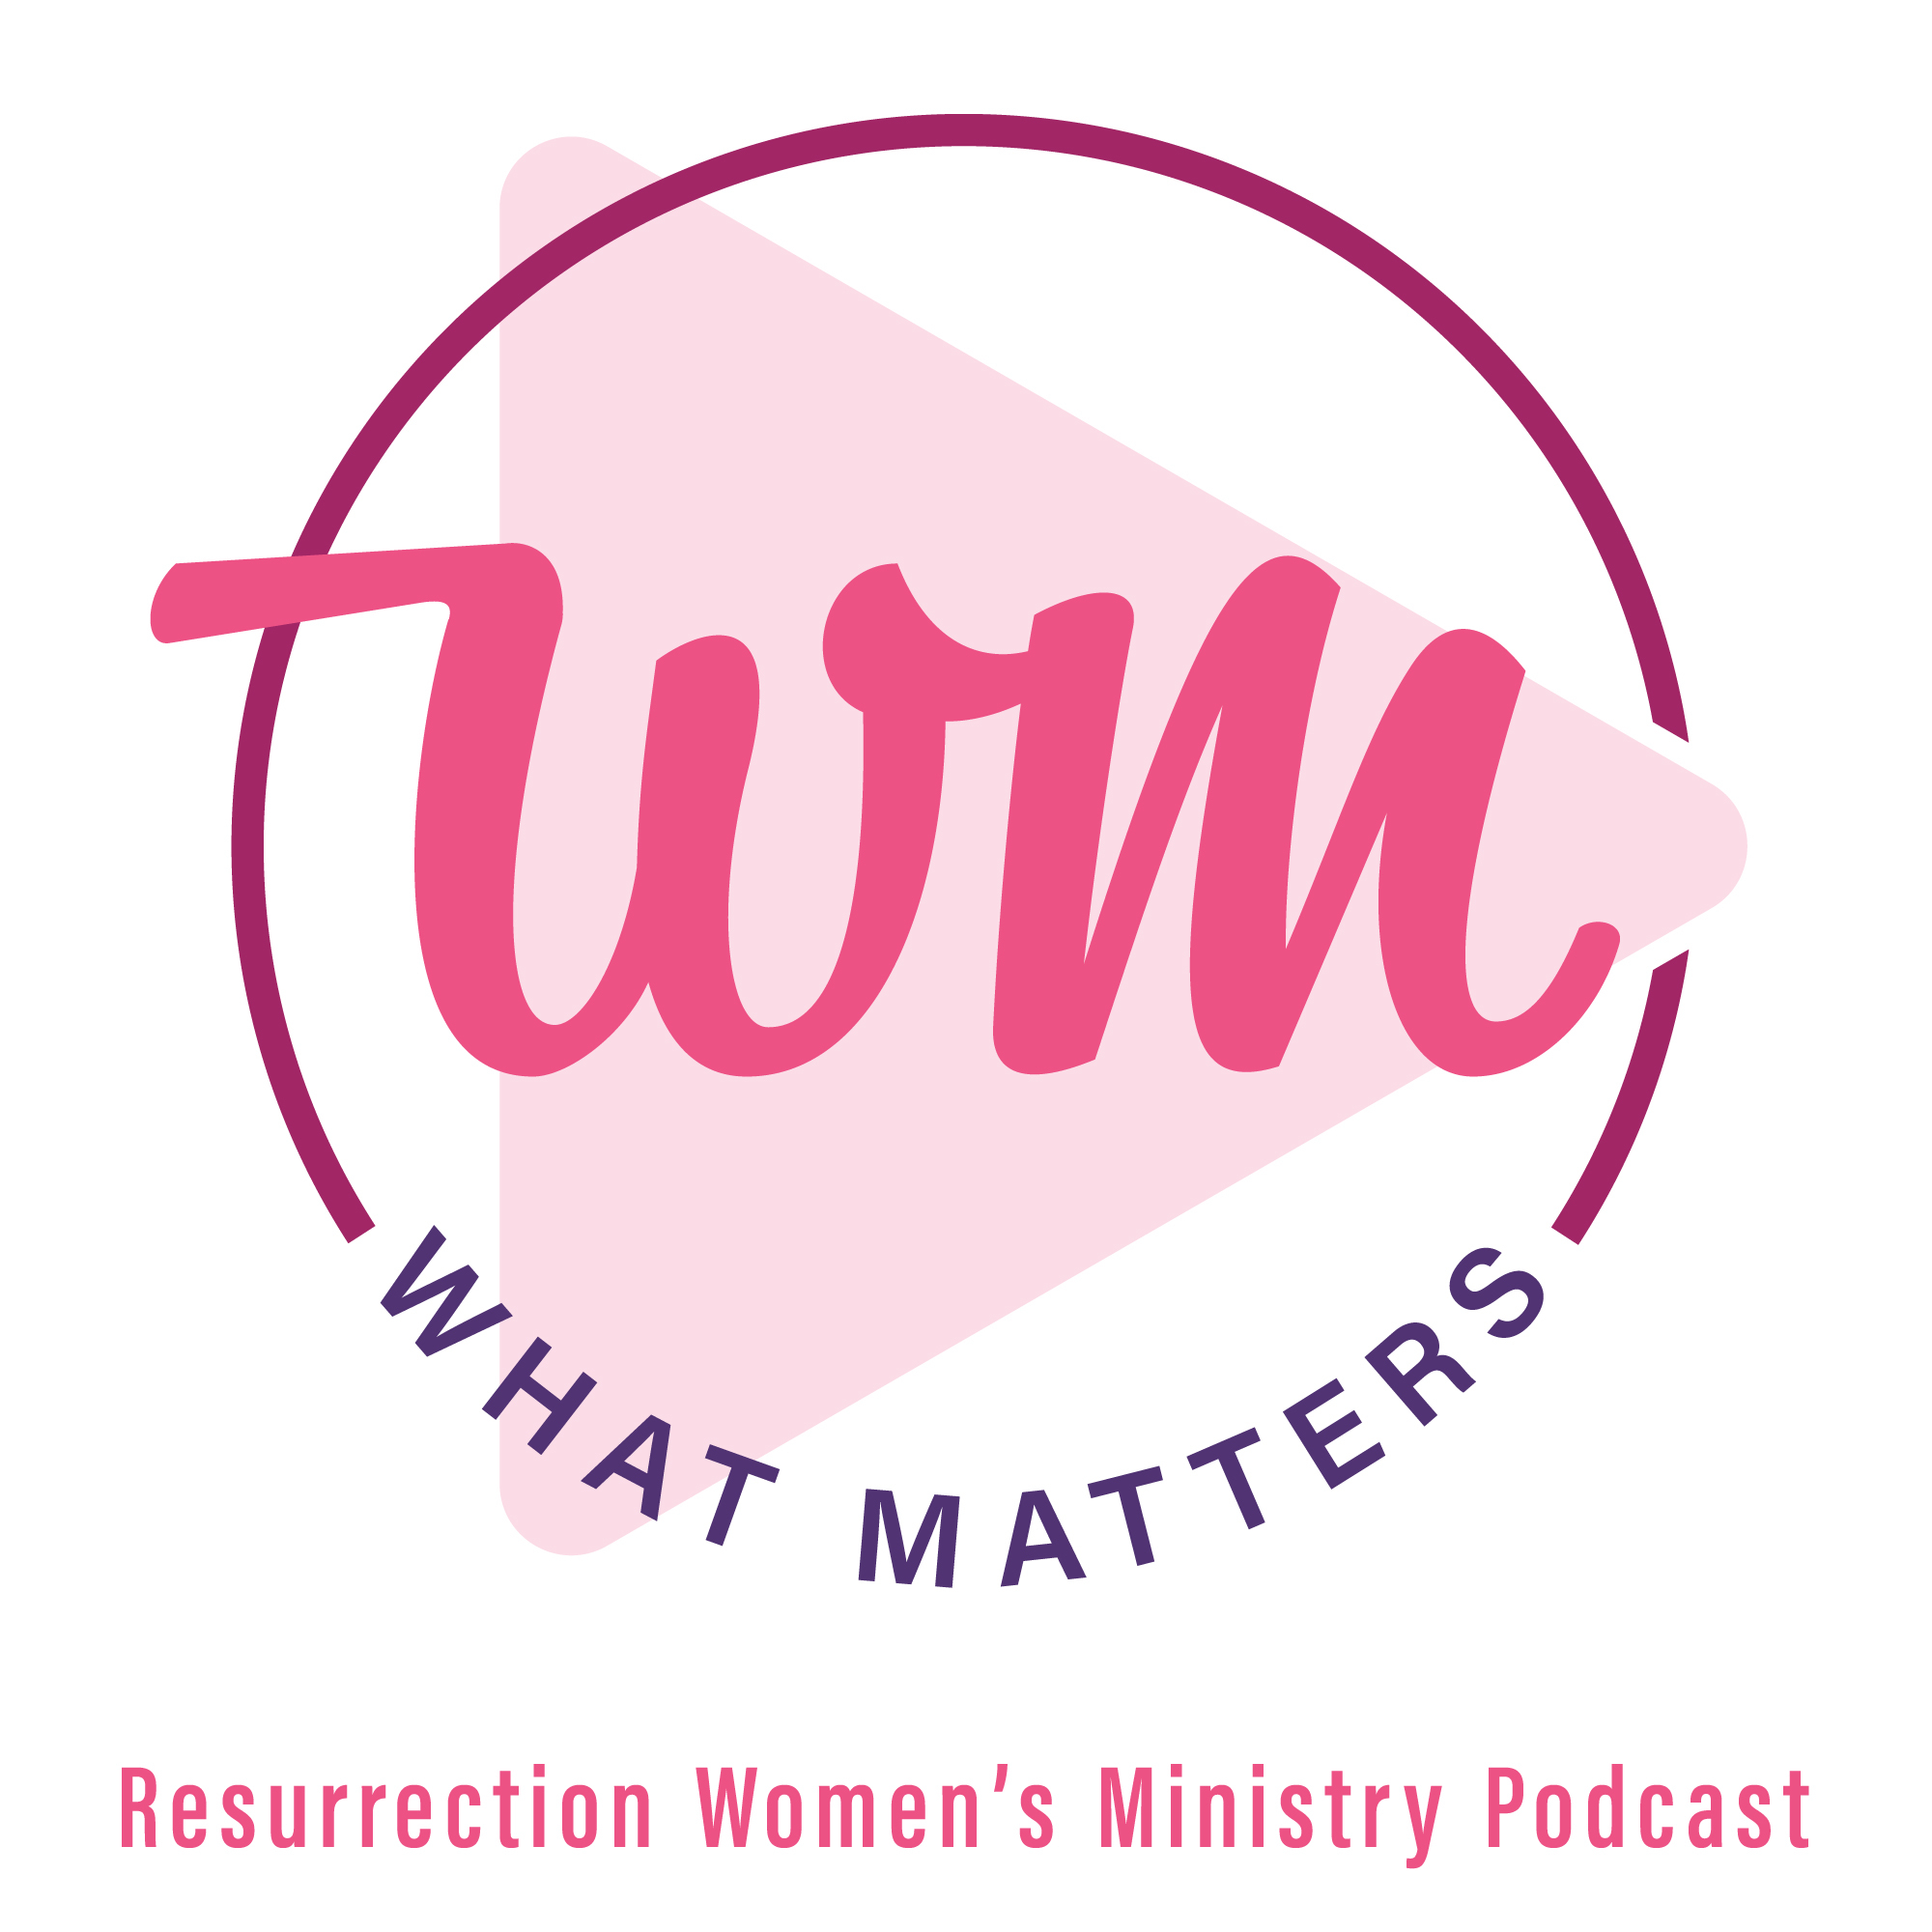 What Matters Podcast